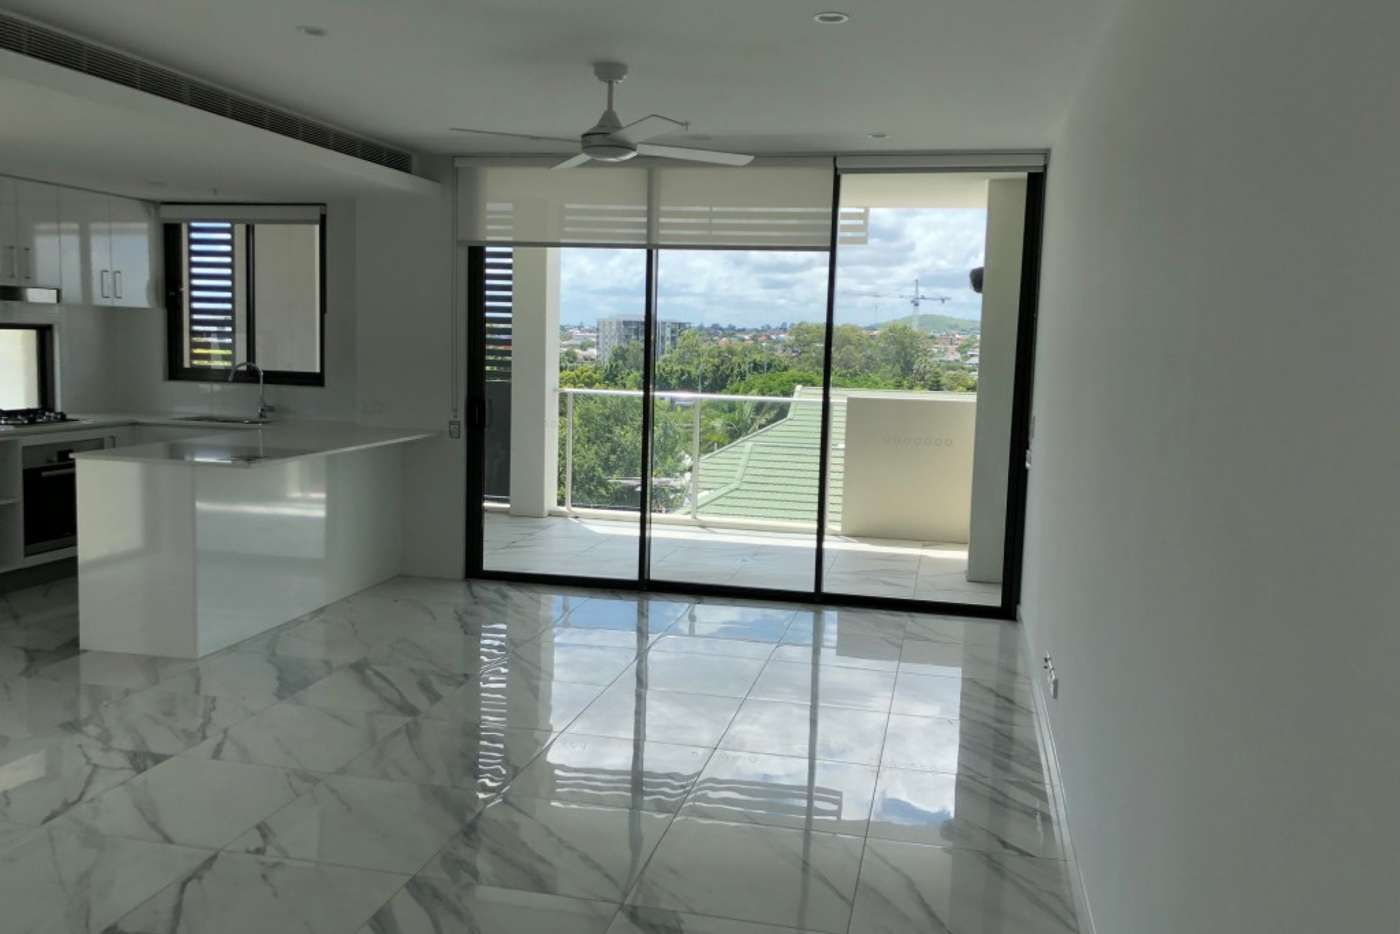 Seventh view of Homely apartment listing, 201/70-74 Carl Street, Woolloongabba QLD 4102